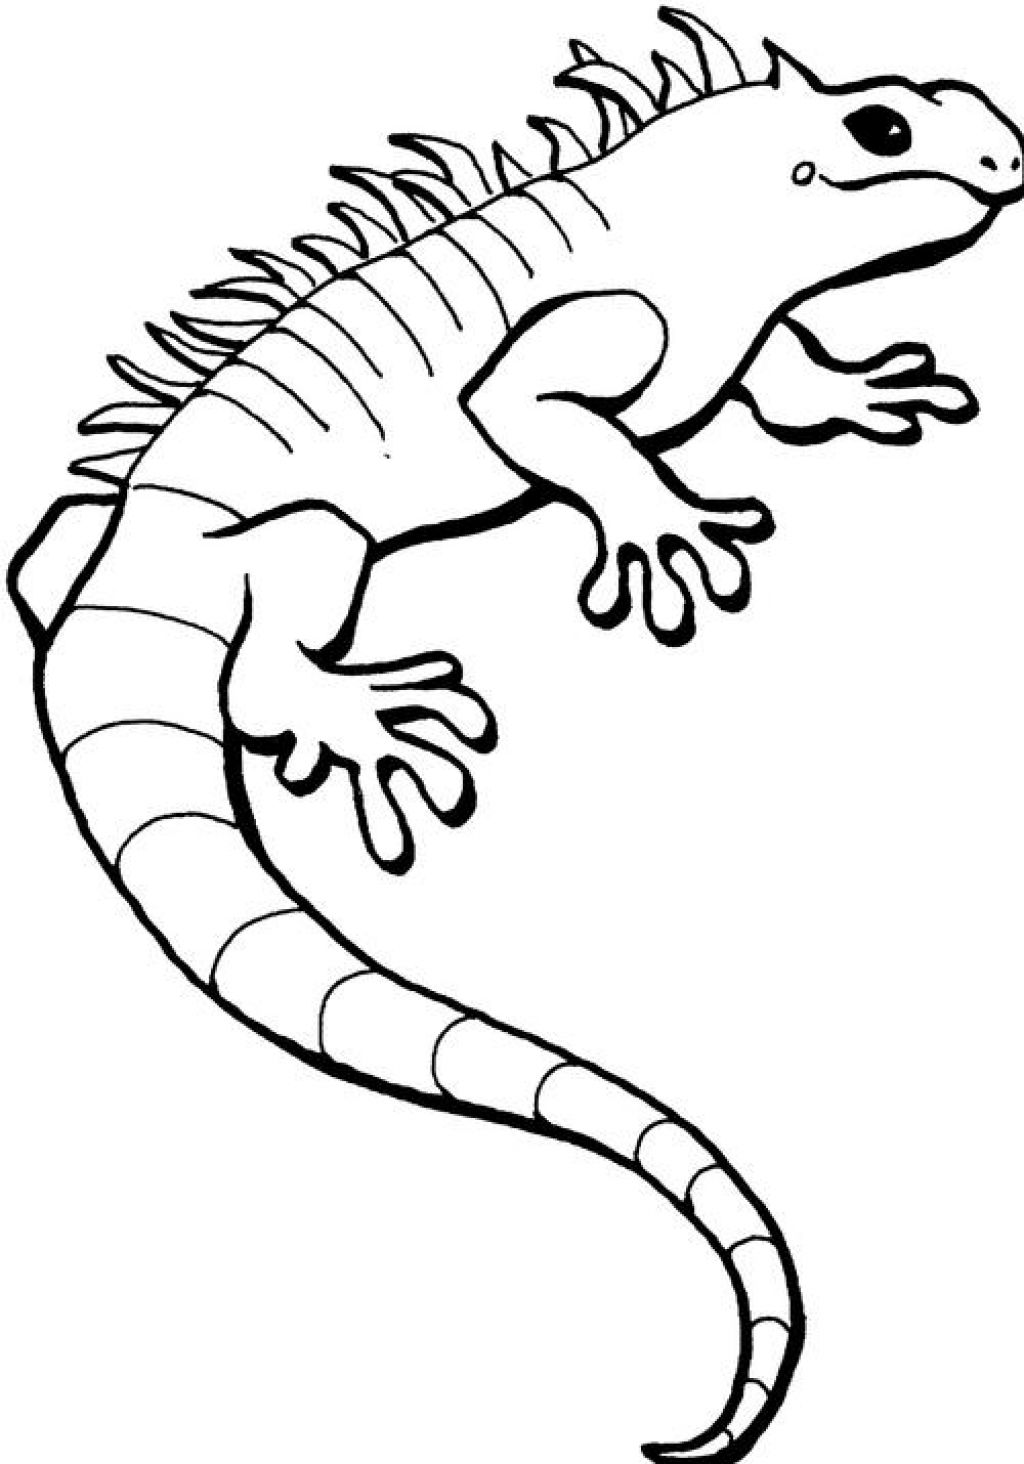 iguana coloring page to print,printable,coloring pages